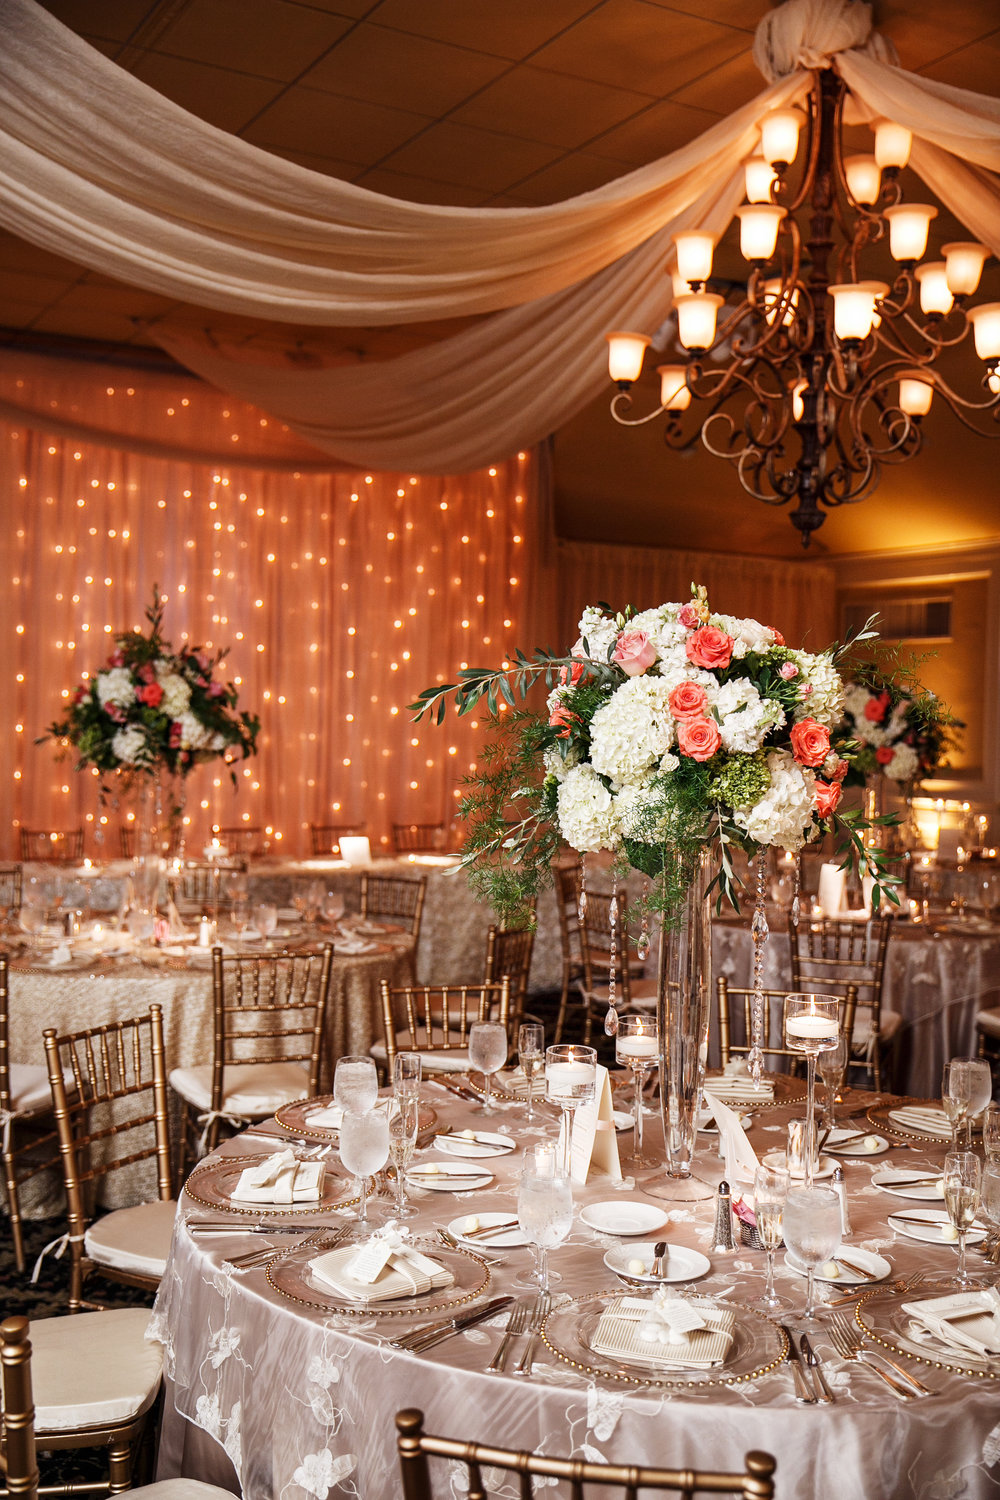 Custom wedding design